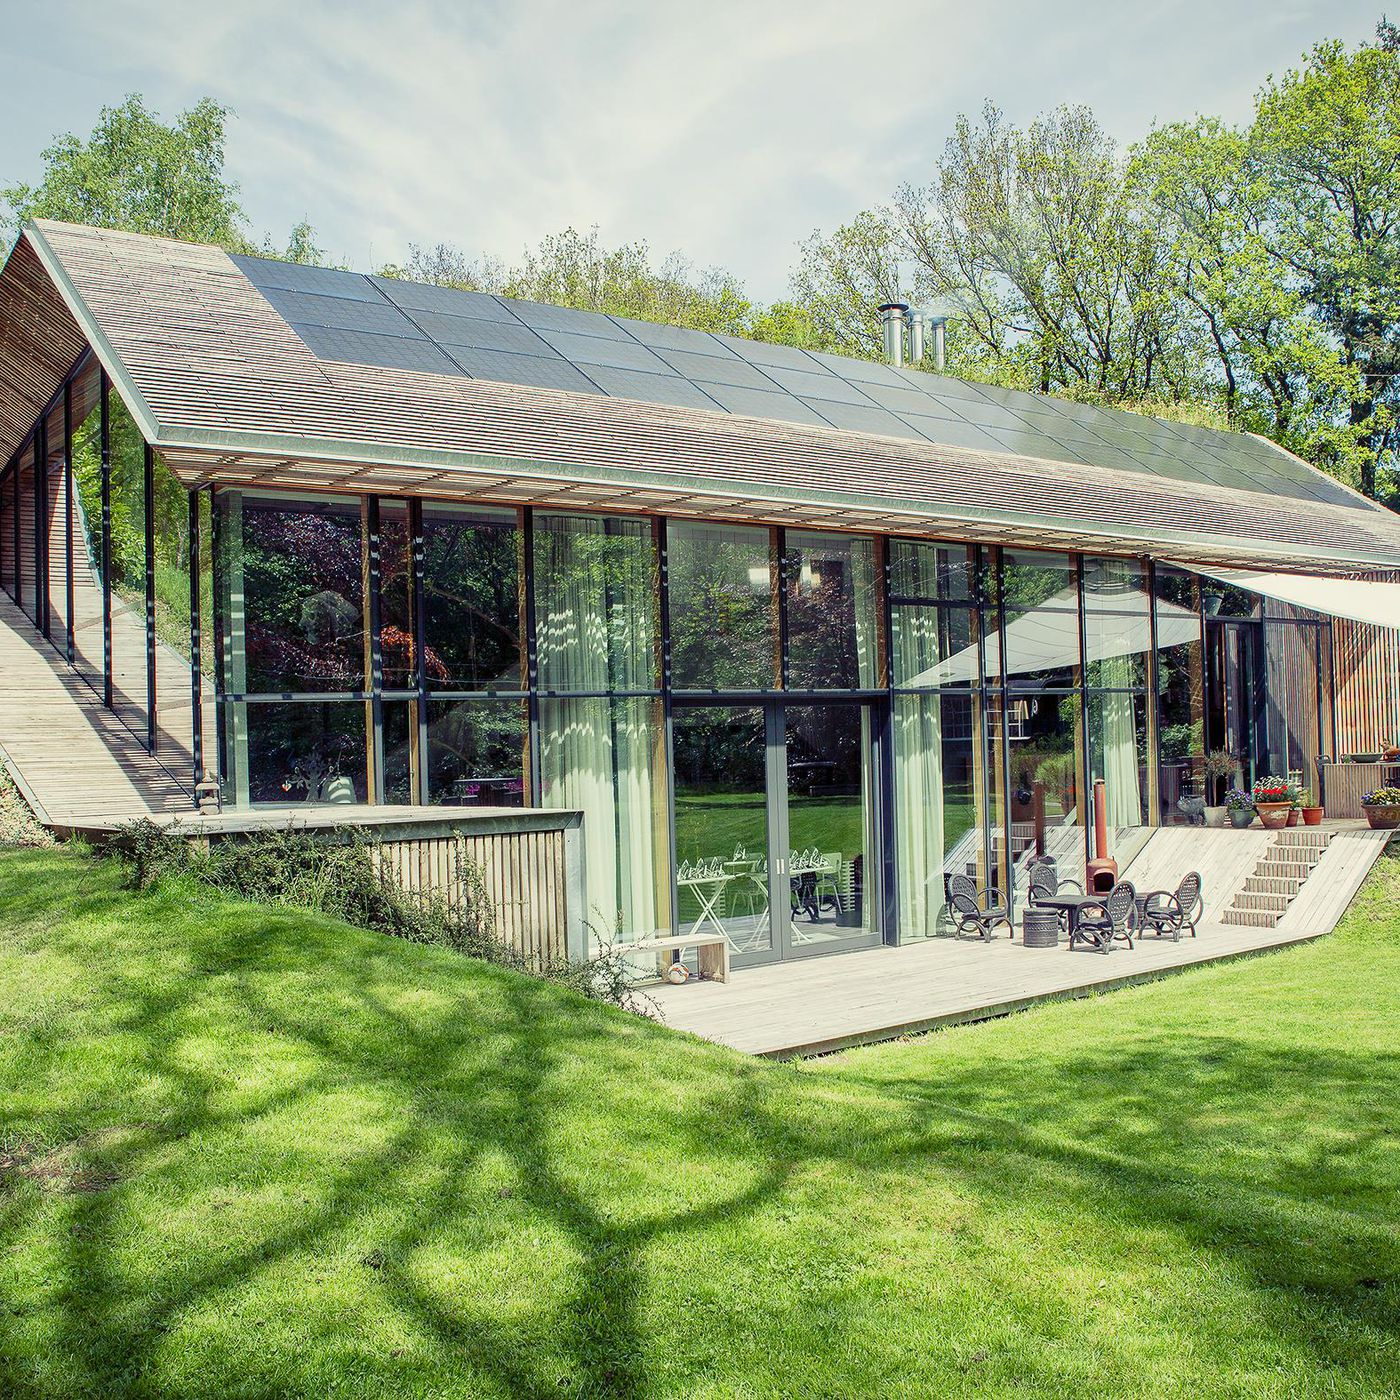 Sustainable Dutch Home For Sale Comes With Surreal Custom Furniture - The-sieben-residence-by-oomen-architects